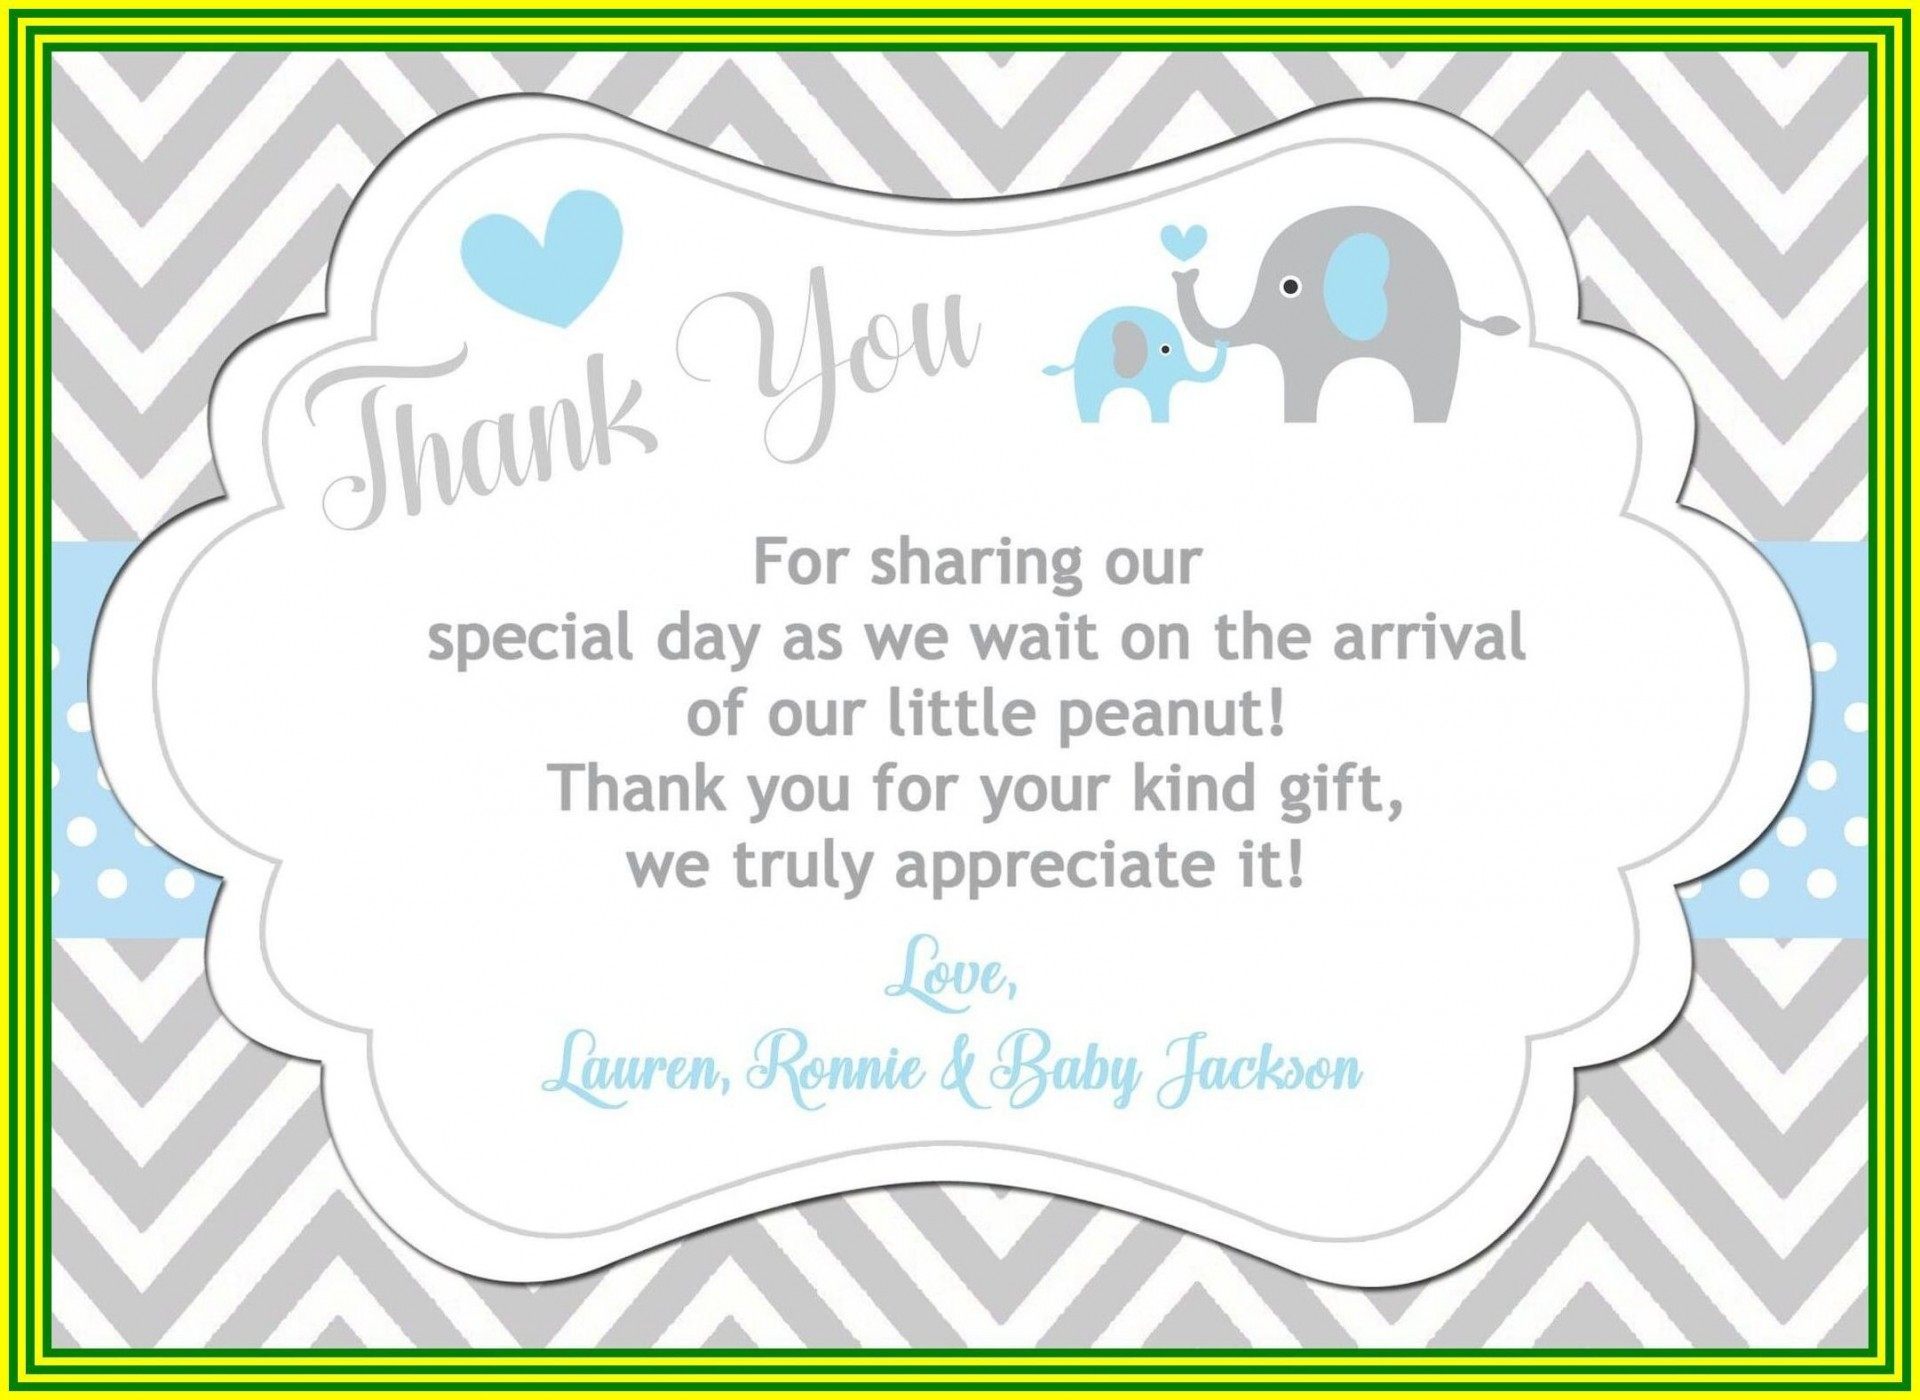 000 Top Thank You Note Wording For Baby Shower Gift High Resolution  Card Sample Example Letter1920